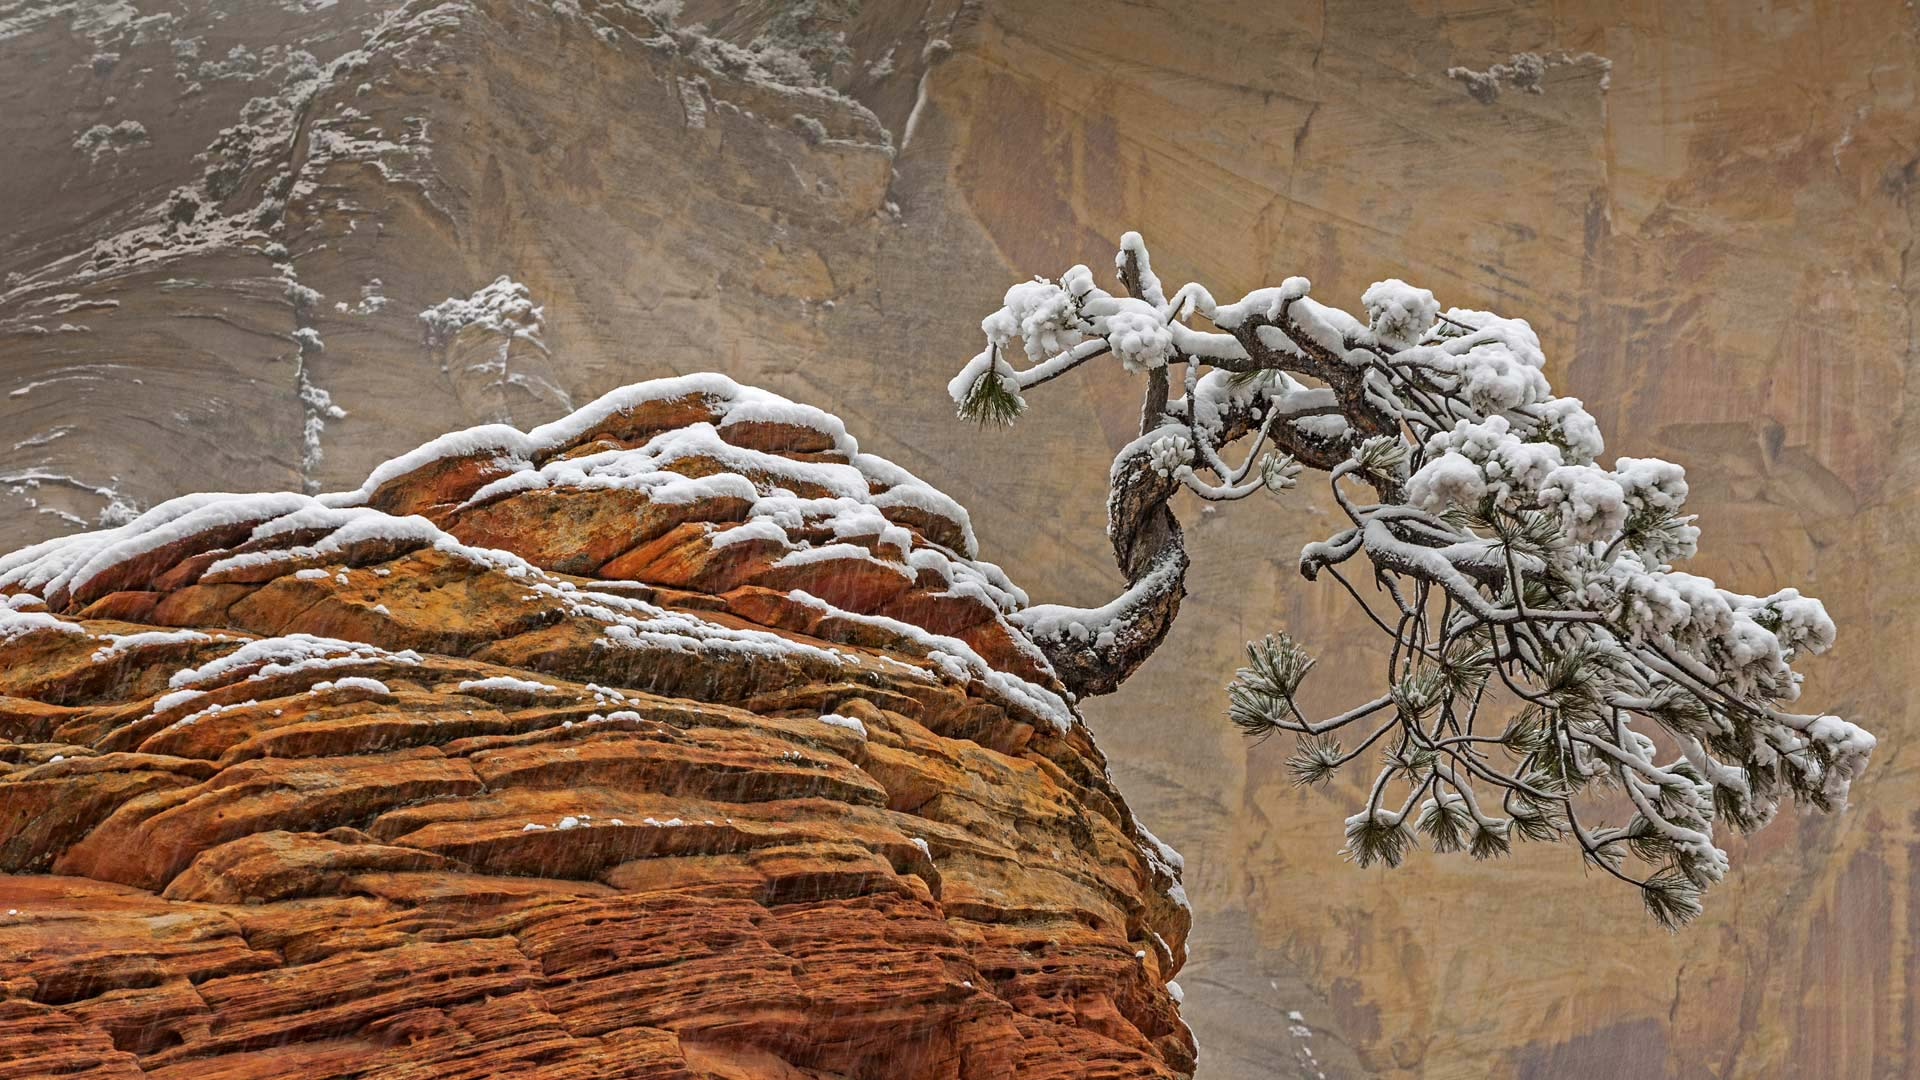 Snow in Zion National Park, Utah